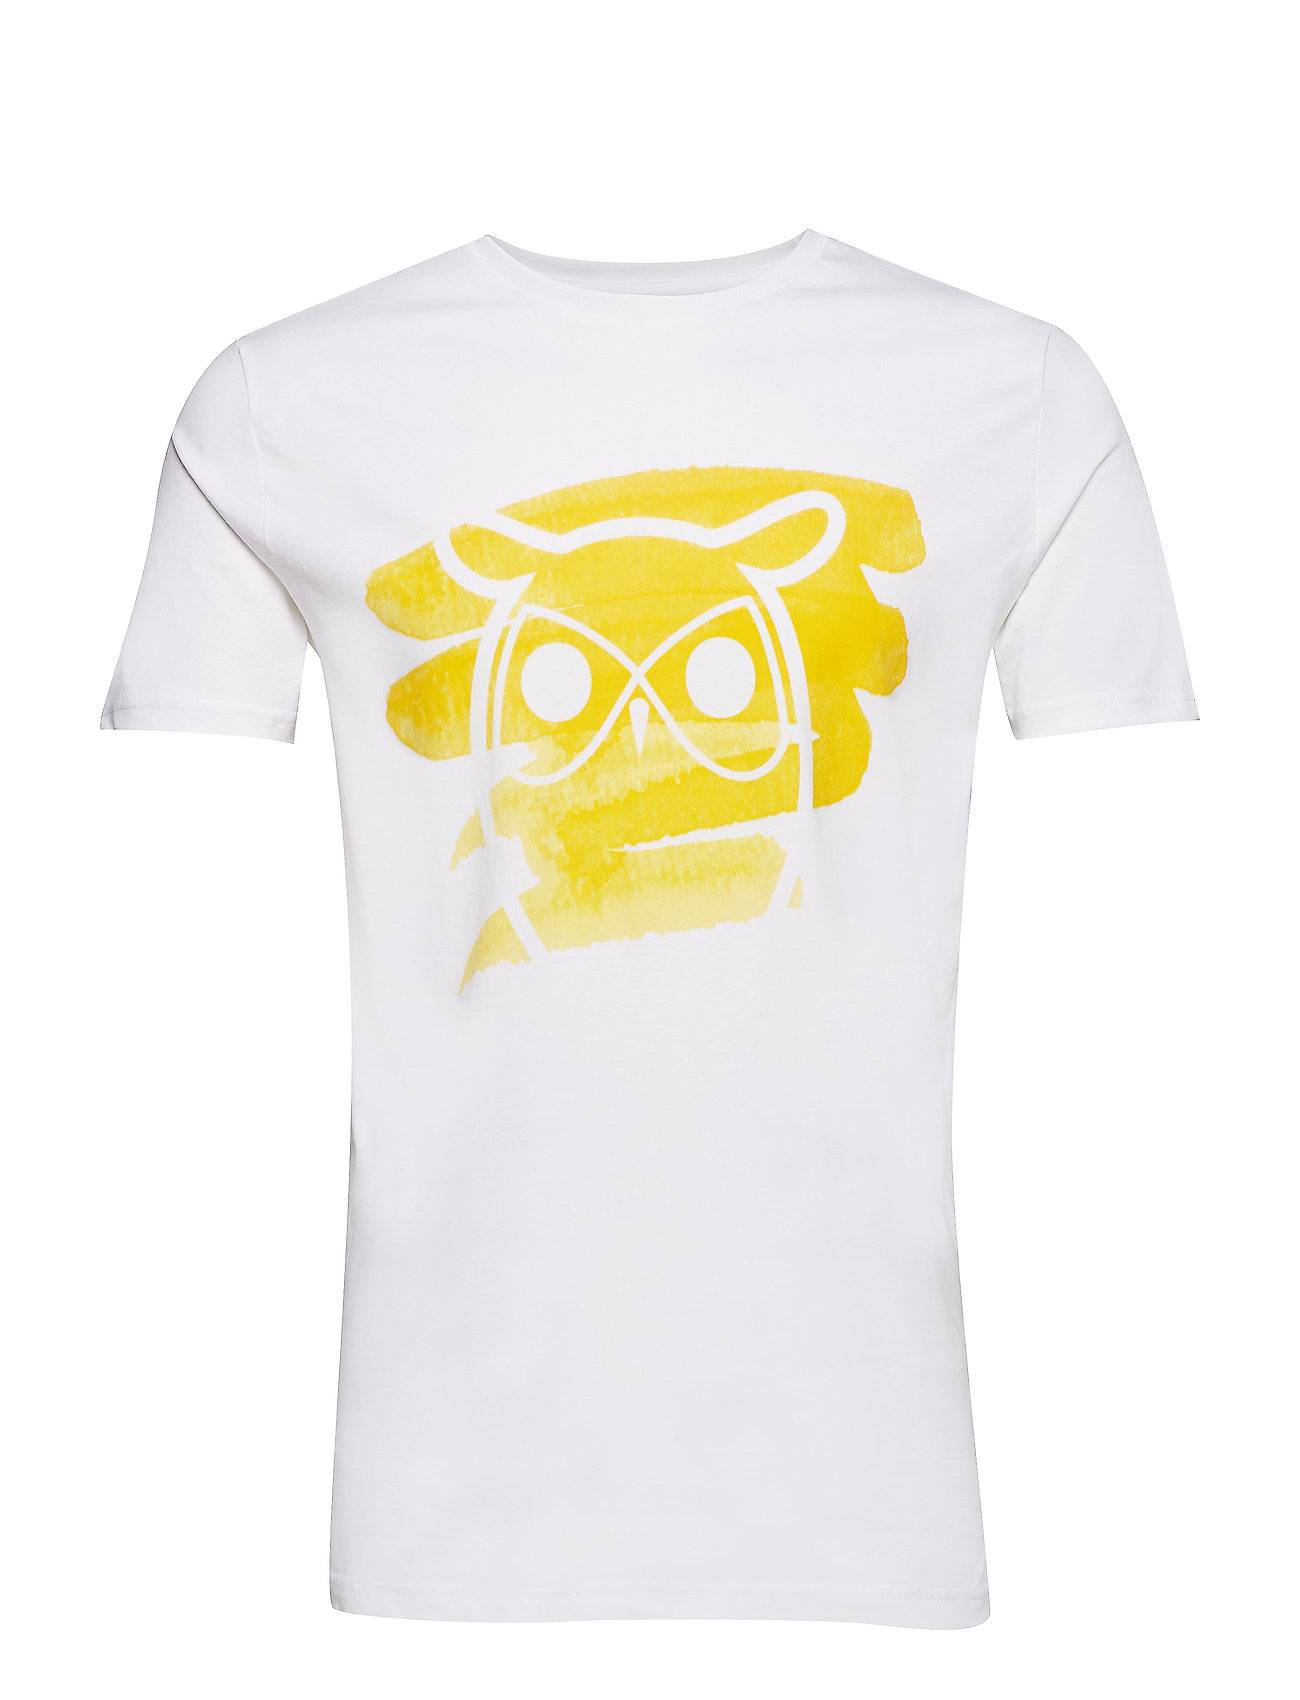 Knowledge Cotton Apparel T-Shirt With Owl And Brush Print -